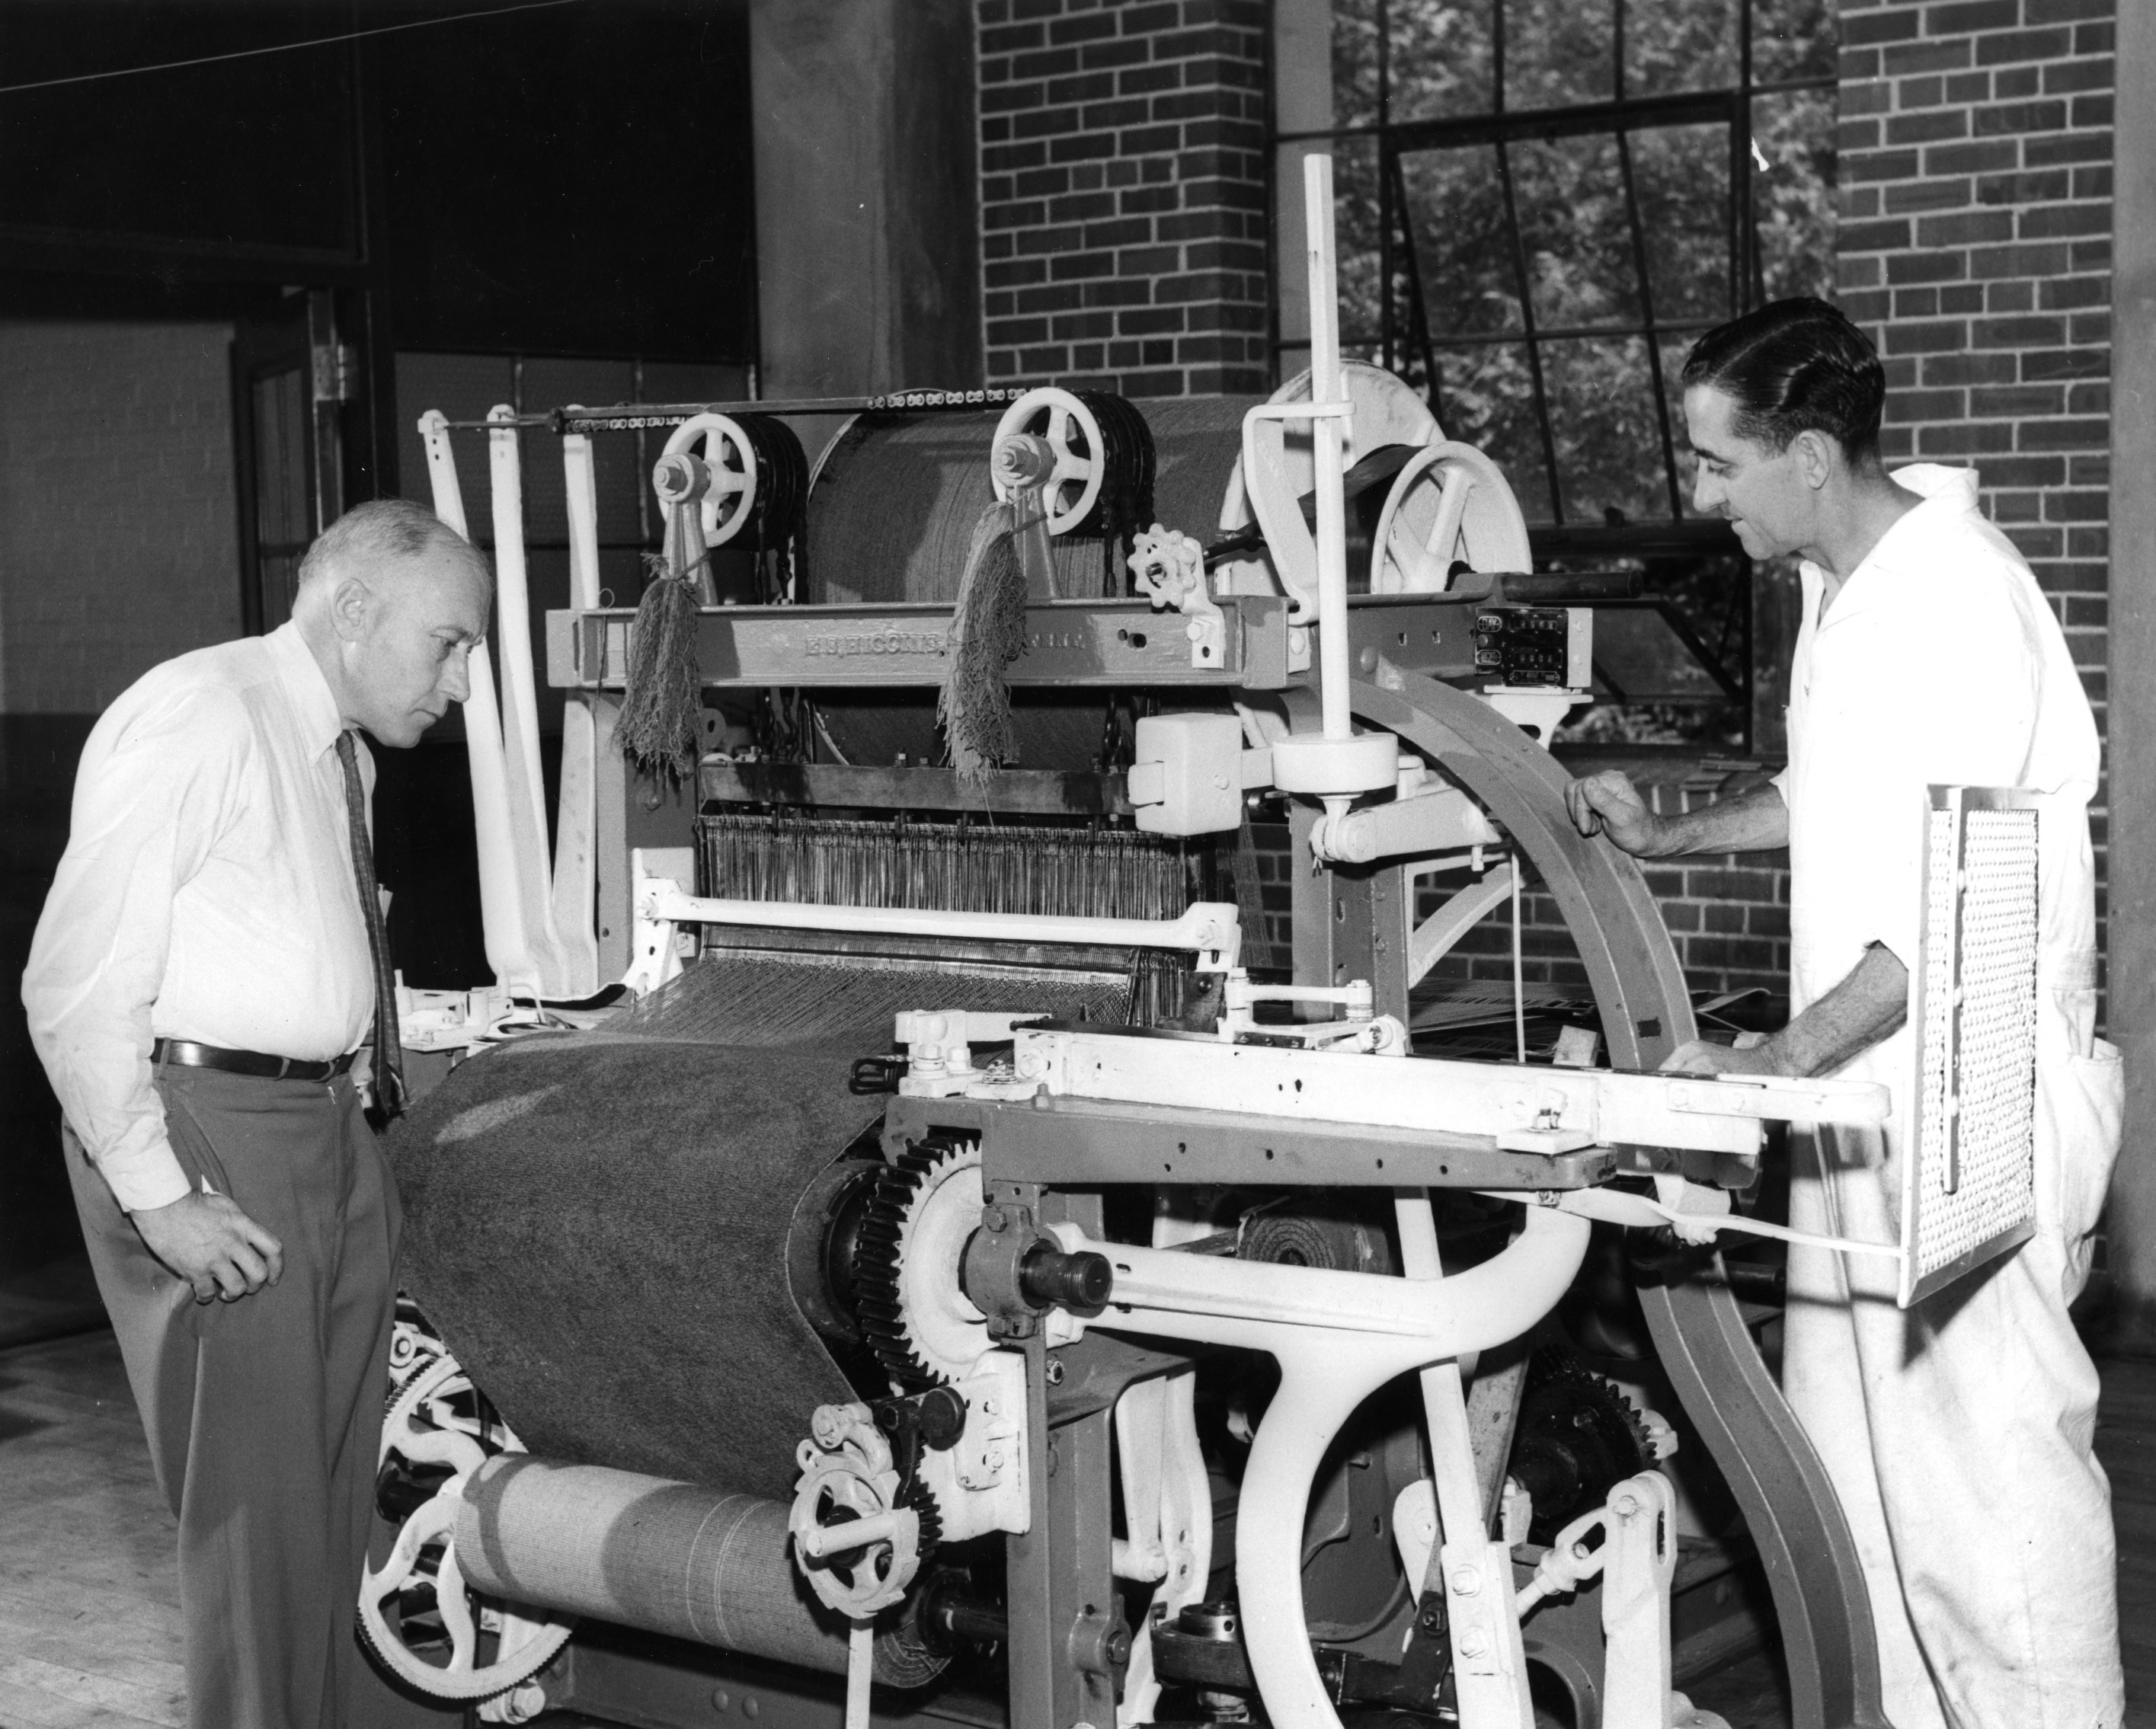 Professor Whittier (left) inspects a carpet loom by Bigelow Sanford, N.C.